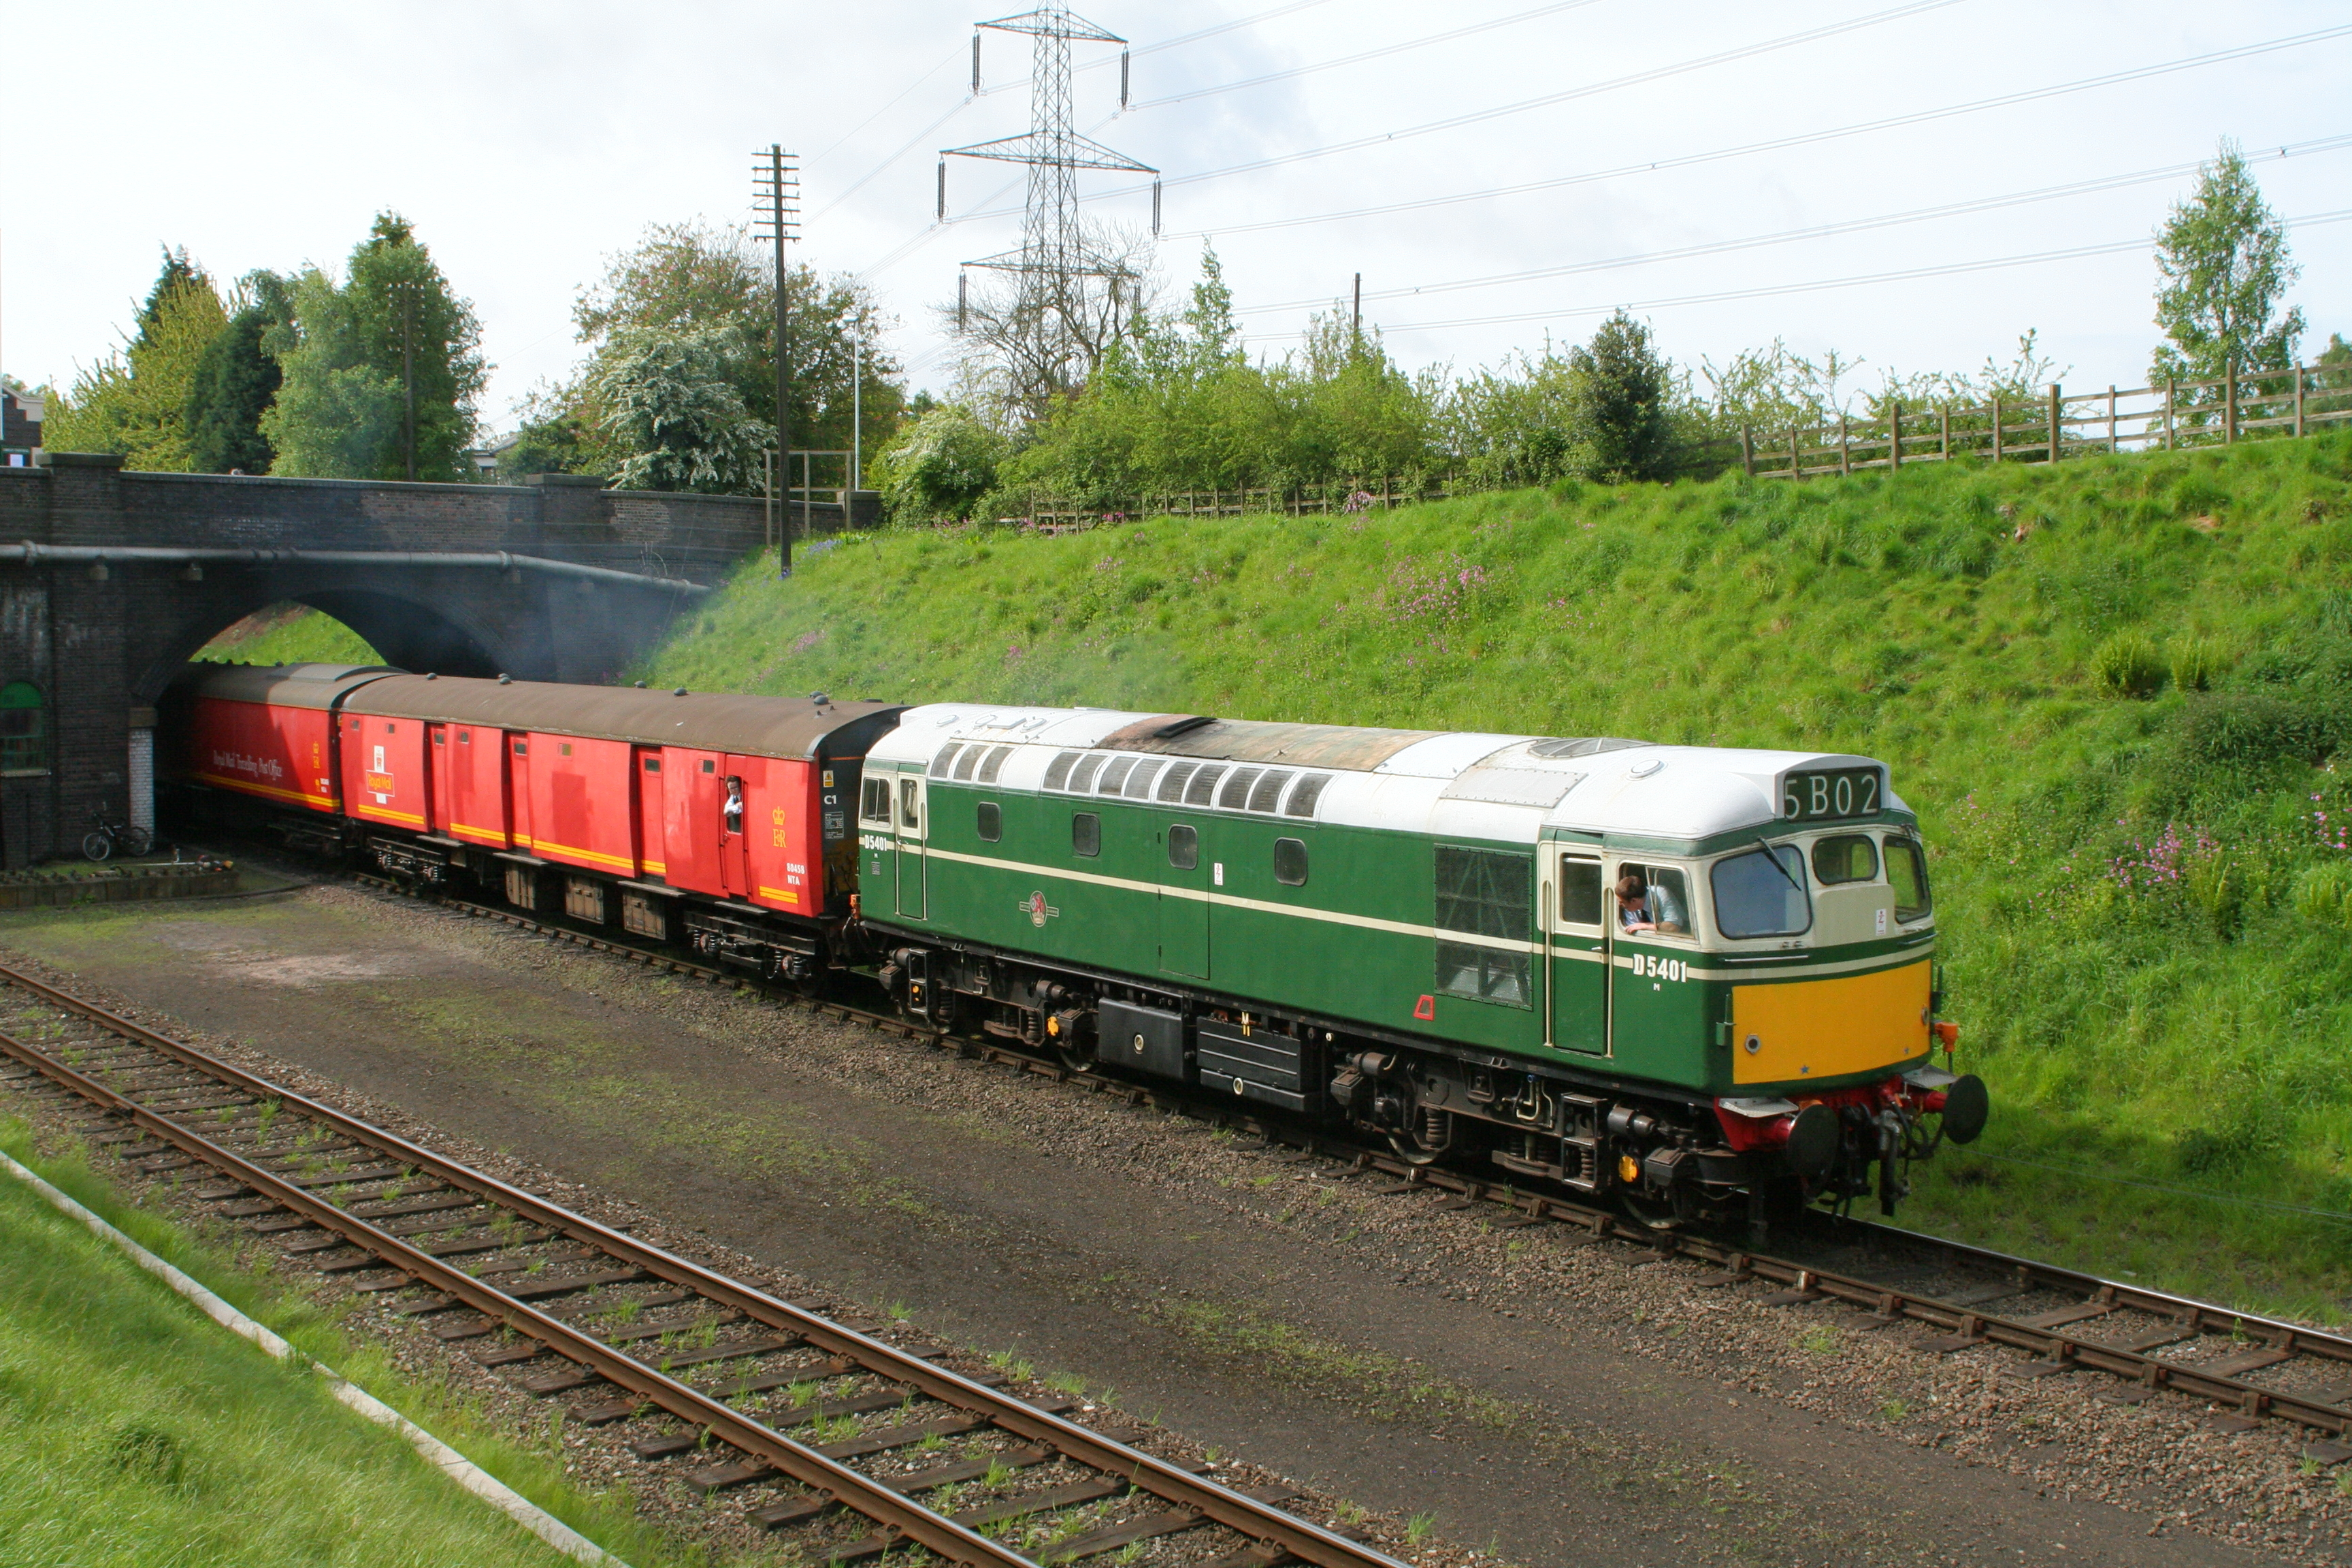 File:British Railways Class 27 D5401 at Great Central ... Railway